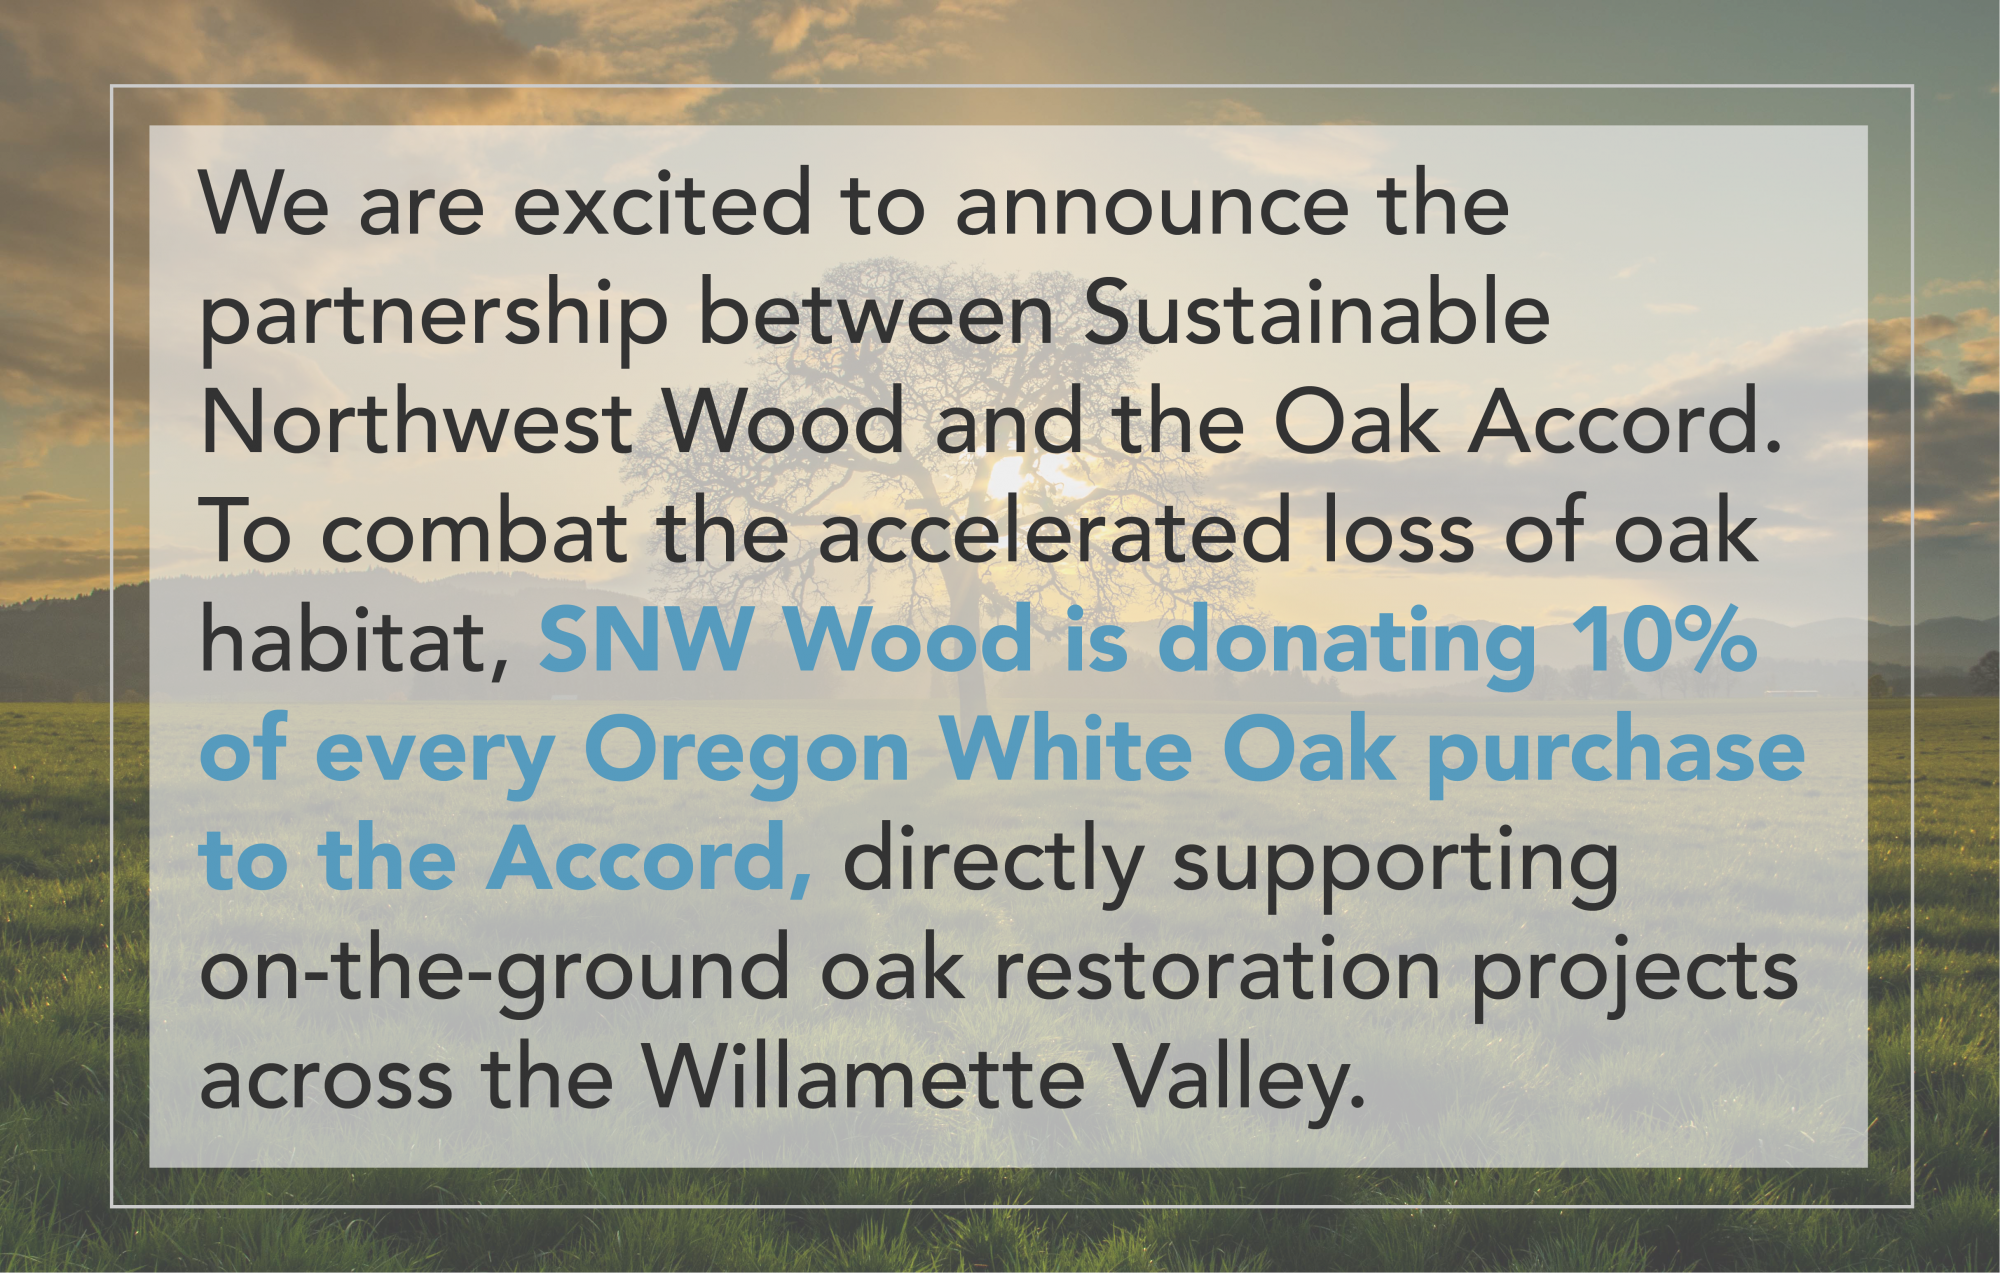 Sustainable Northwest Wood and OA